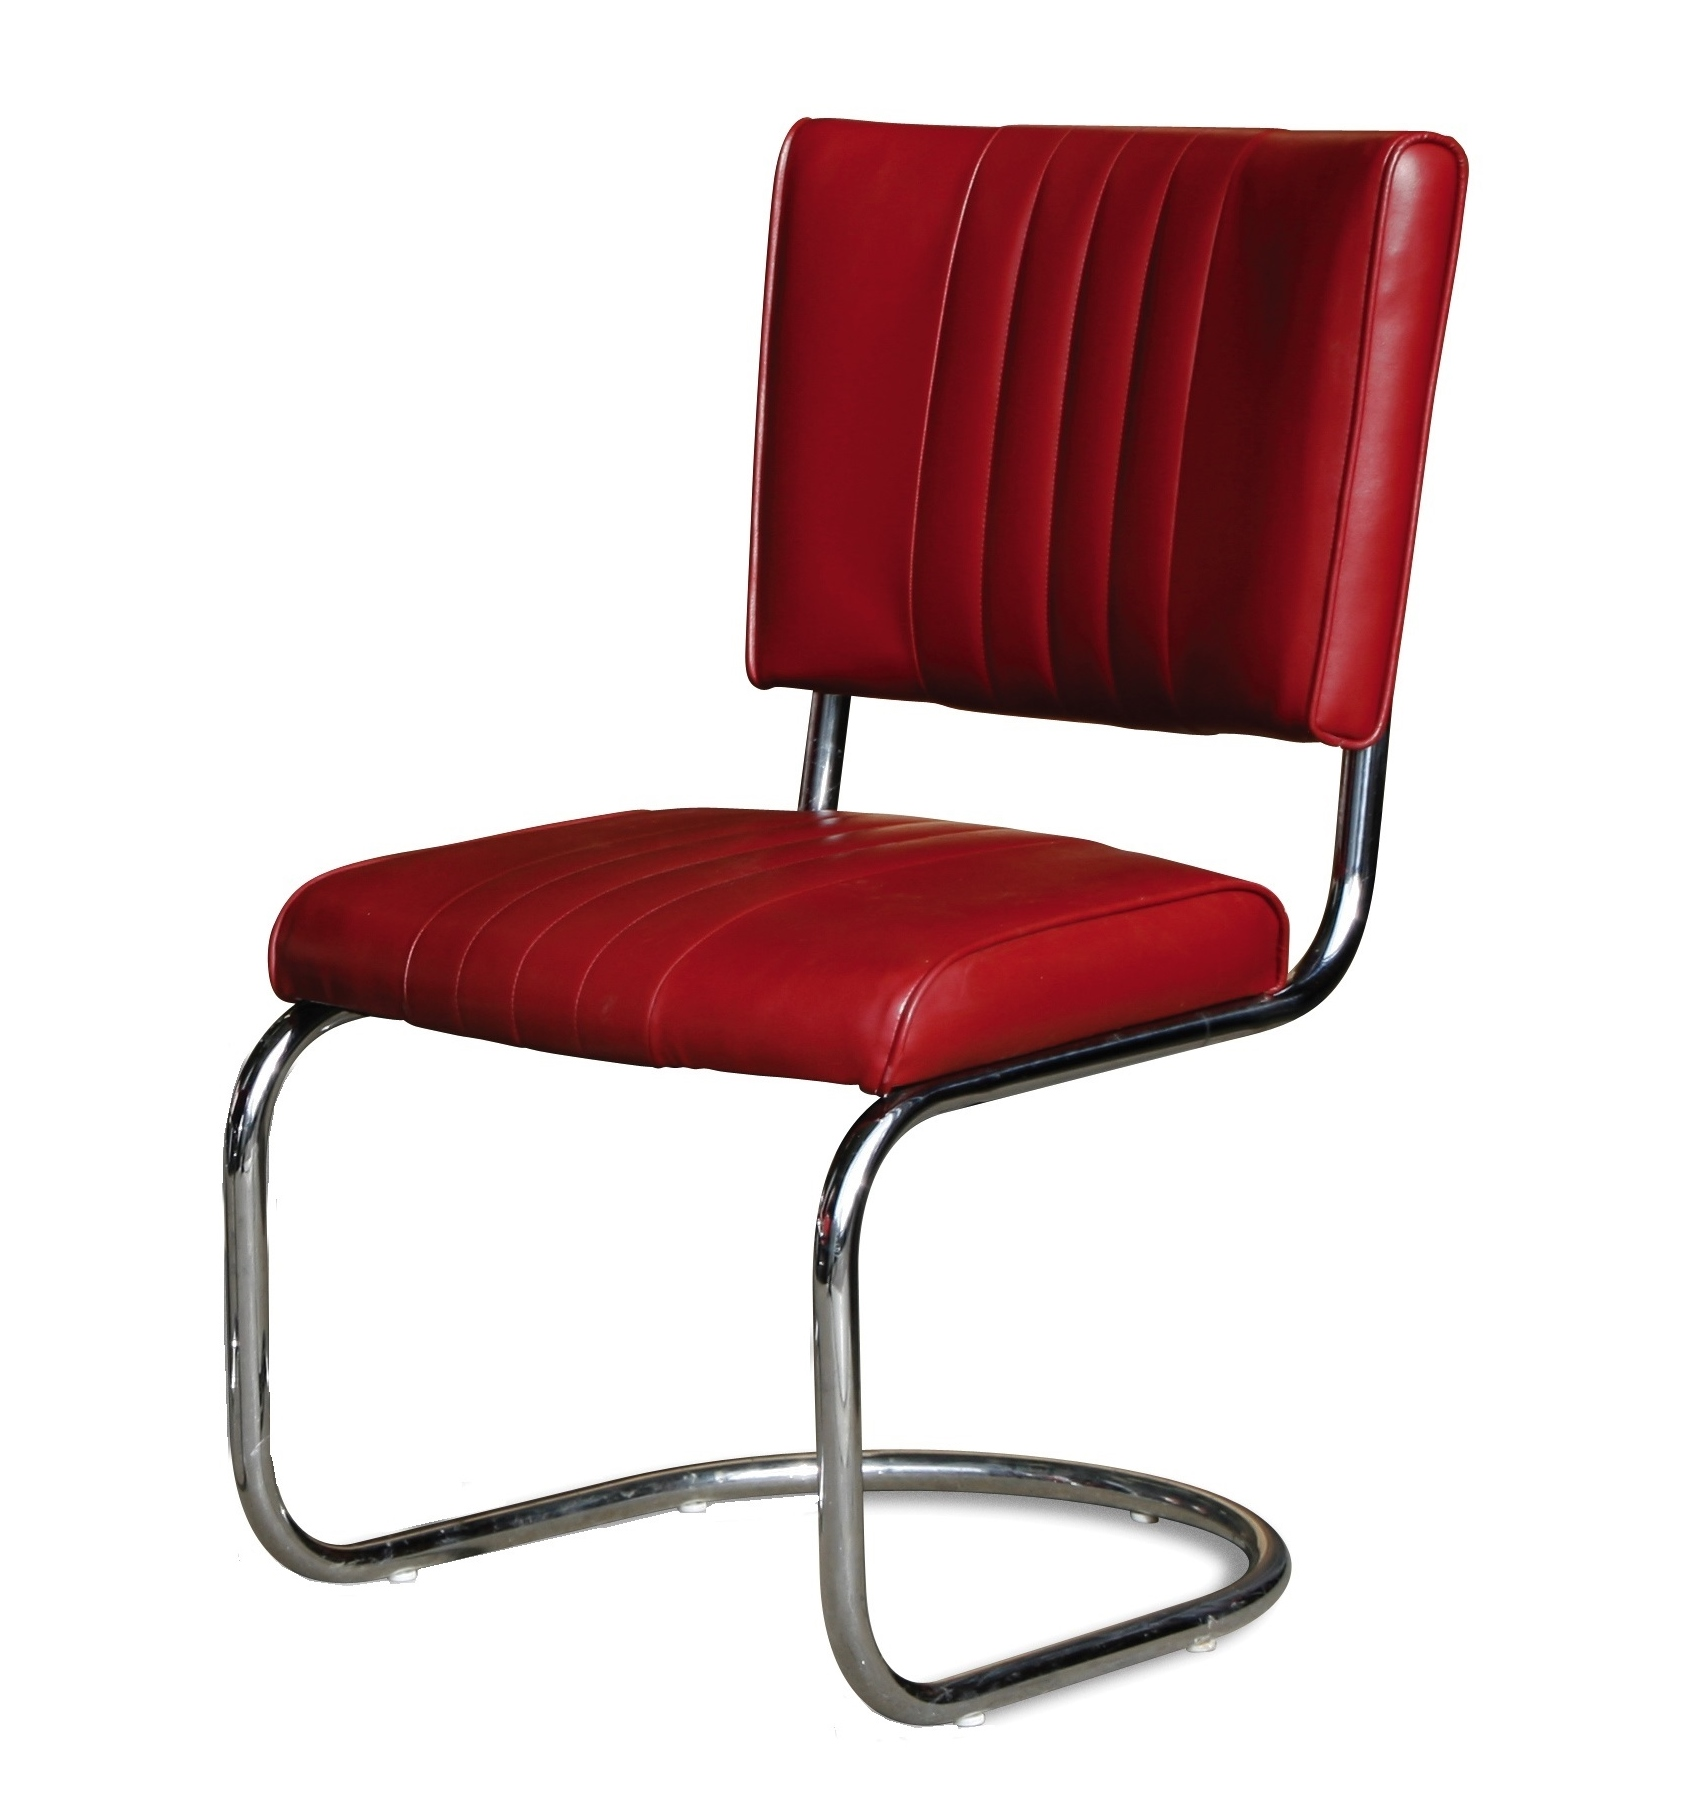 kitchen furniture retro kitchen chairs Bel Air Retro Furniture Diner Chair CO28